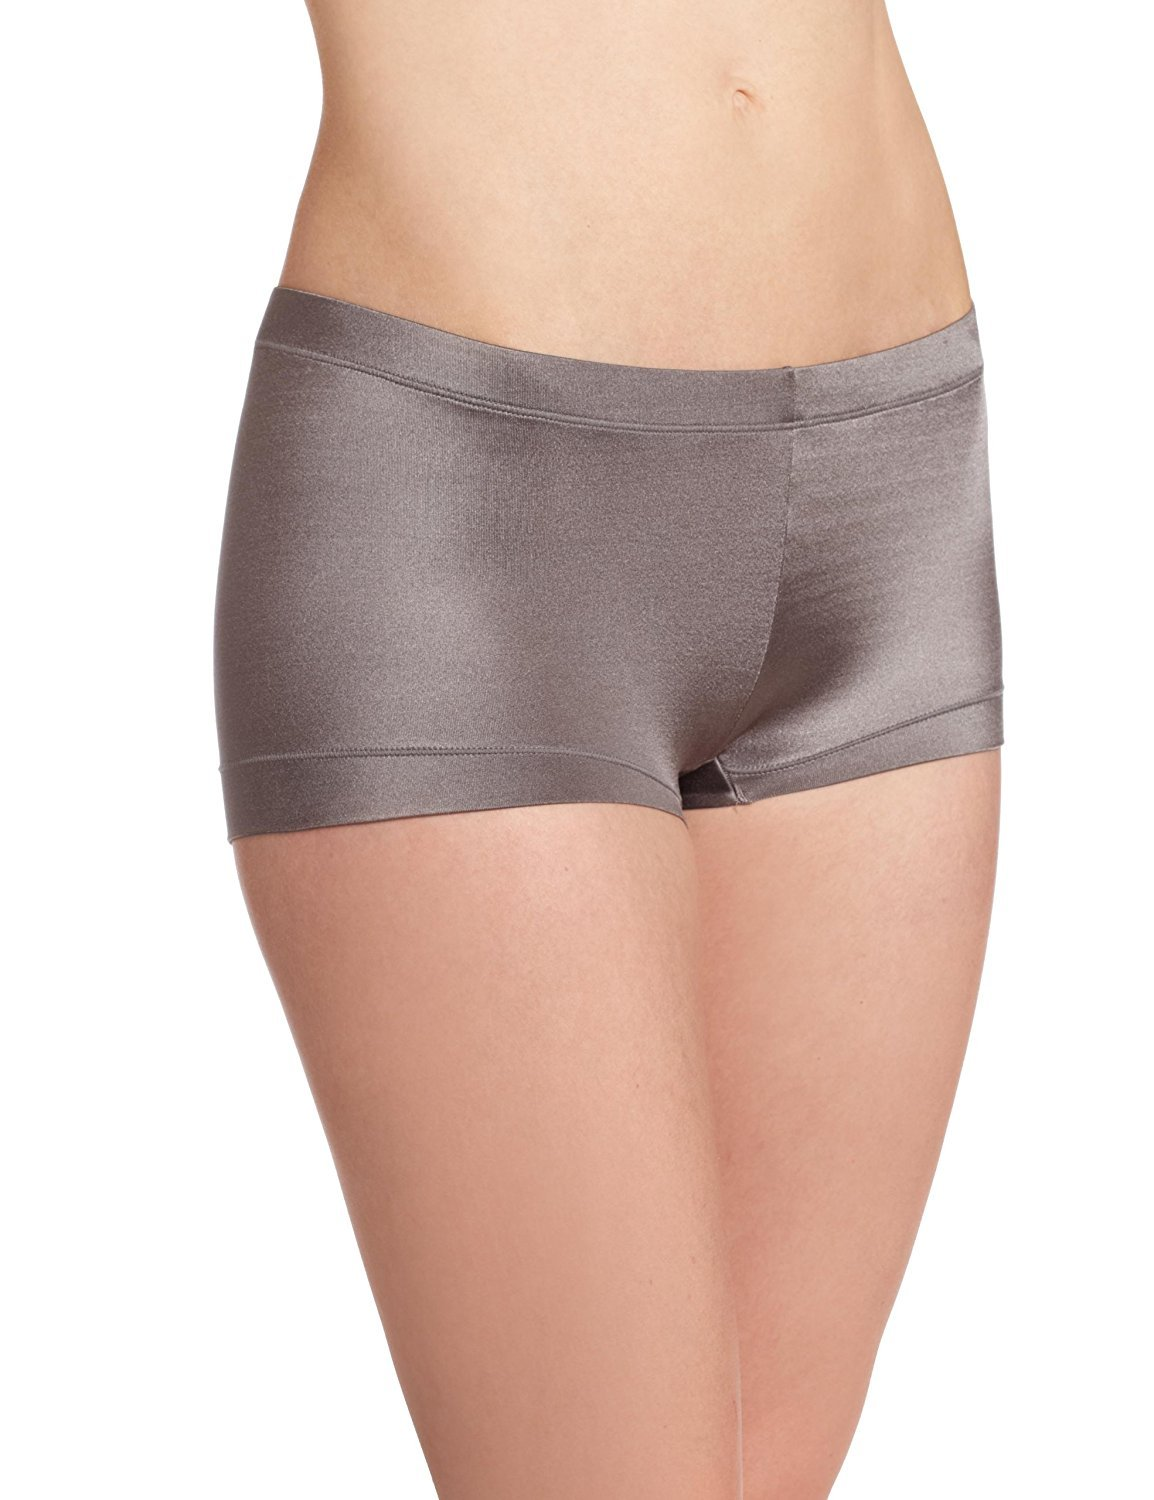 Womens Dream Boyshort Panty. These microfiber panties are so silky soft, you might think you are in a dream. Features a stretch fit that moves with you. , Mon, 30 Aug 2021 06:01:13 +0300